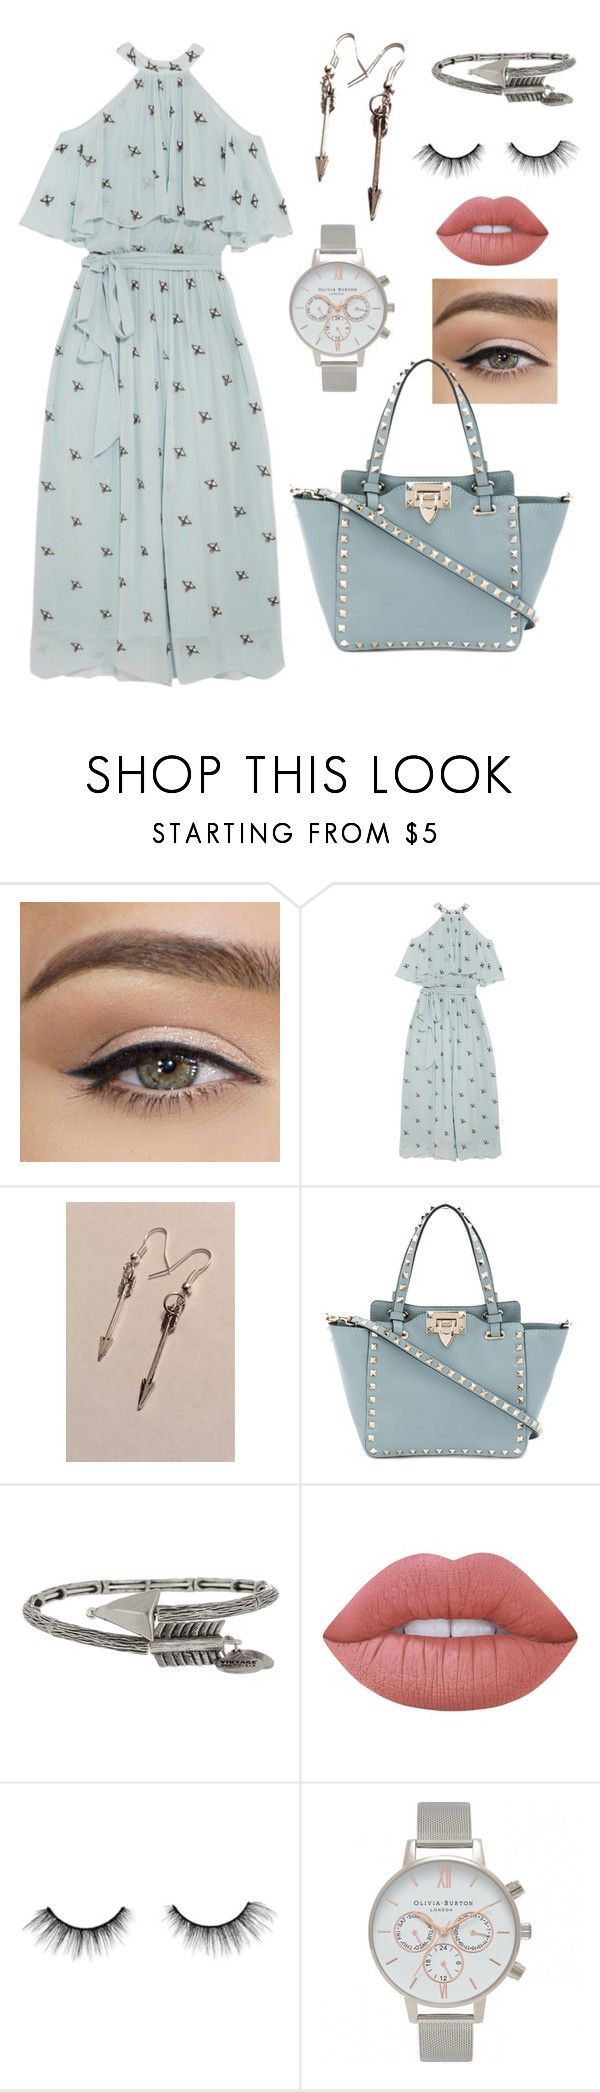 """Arrow"" by loveisablindwar on Polyvore featuring Temperley London, Valentino, Alex and Ani, Lime Crime, tarte and Olivia Burton"